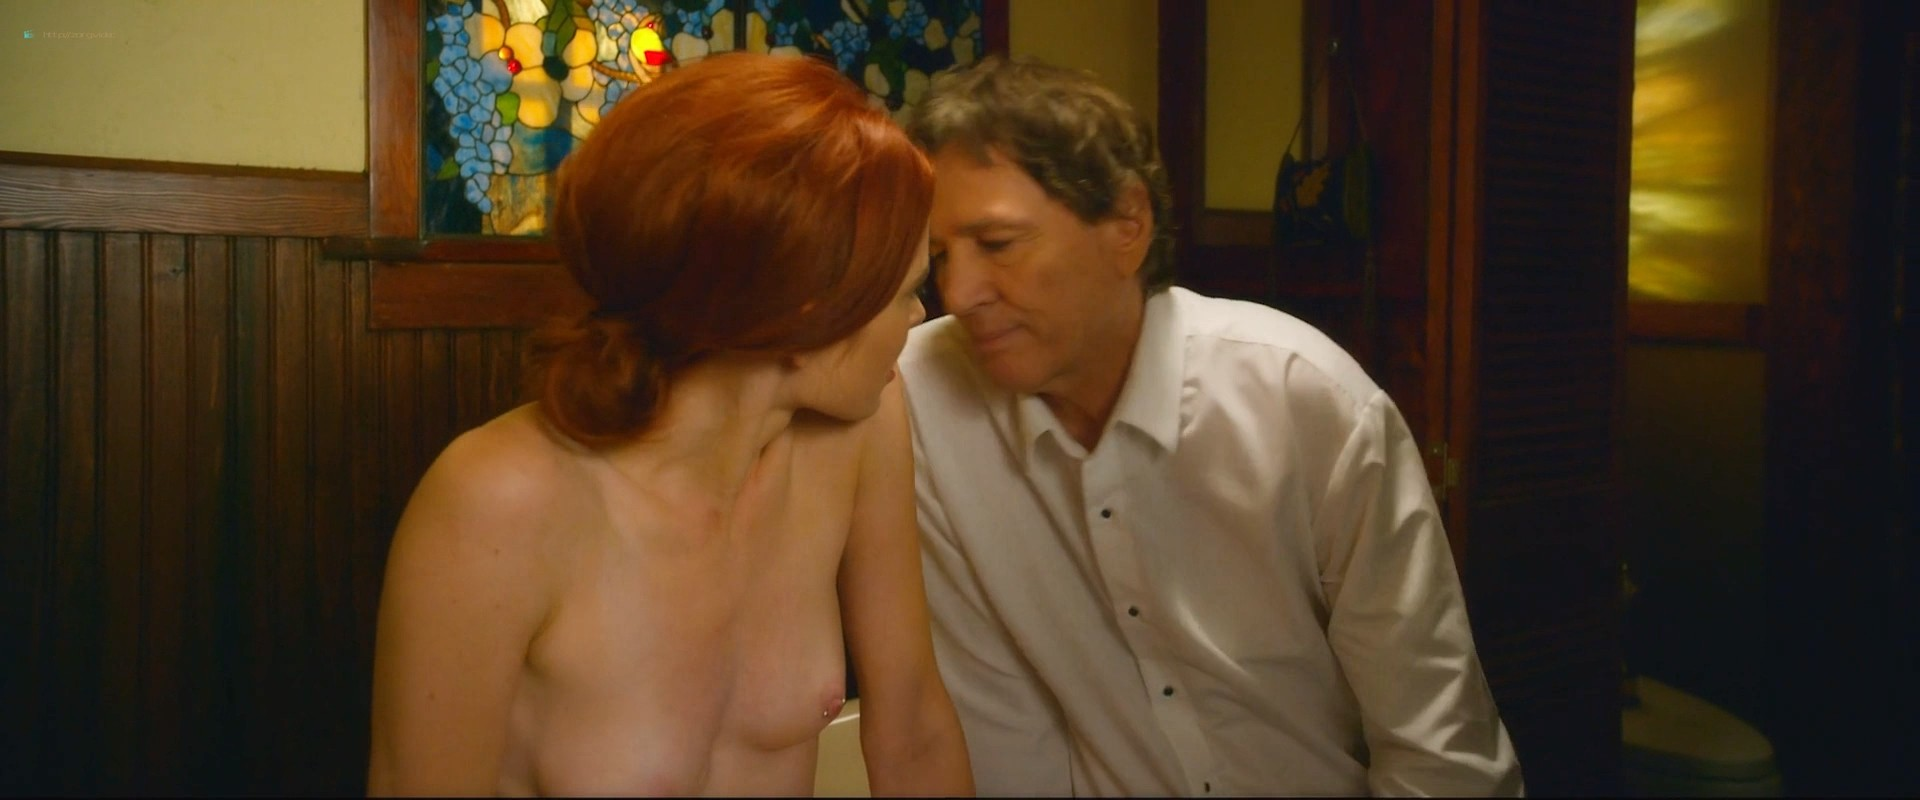 Chloe Dykstra nude topless and hot Ana Foxx and others hot - Diminuendo (2018) HD 1080p Web (13)